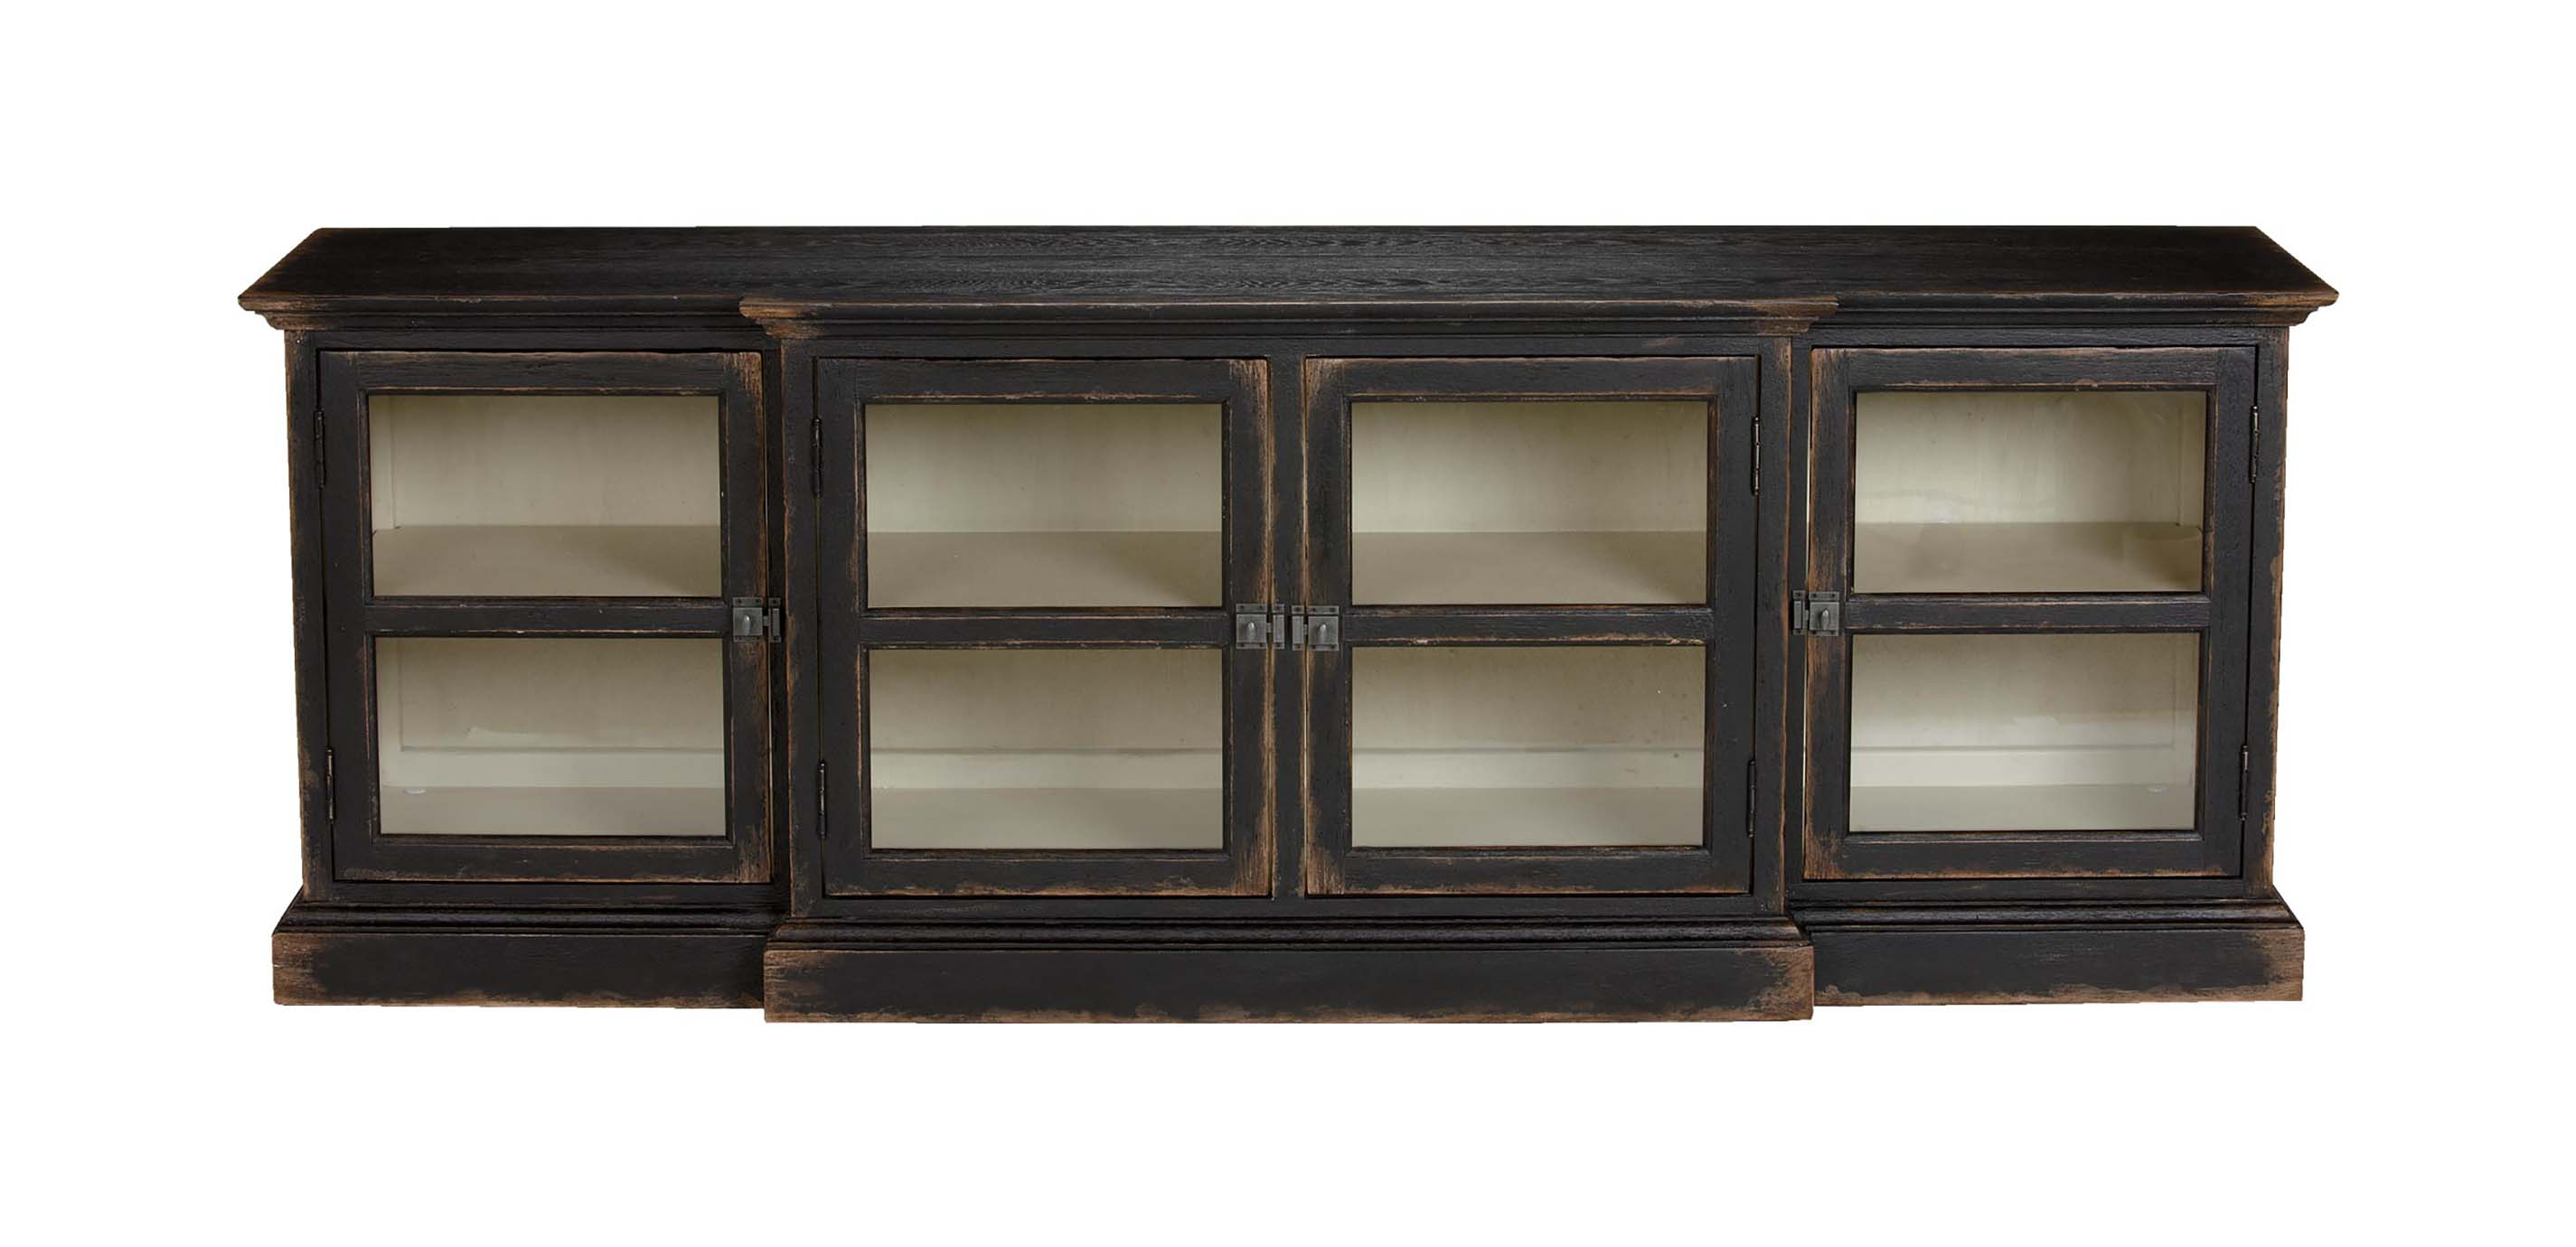 living room furniture cabinets. Farragut Media Cabinet  Rustic Black with White Interior large Shop Consoles Living Room Entertainment Cabinets Ethan